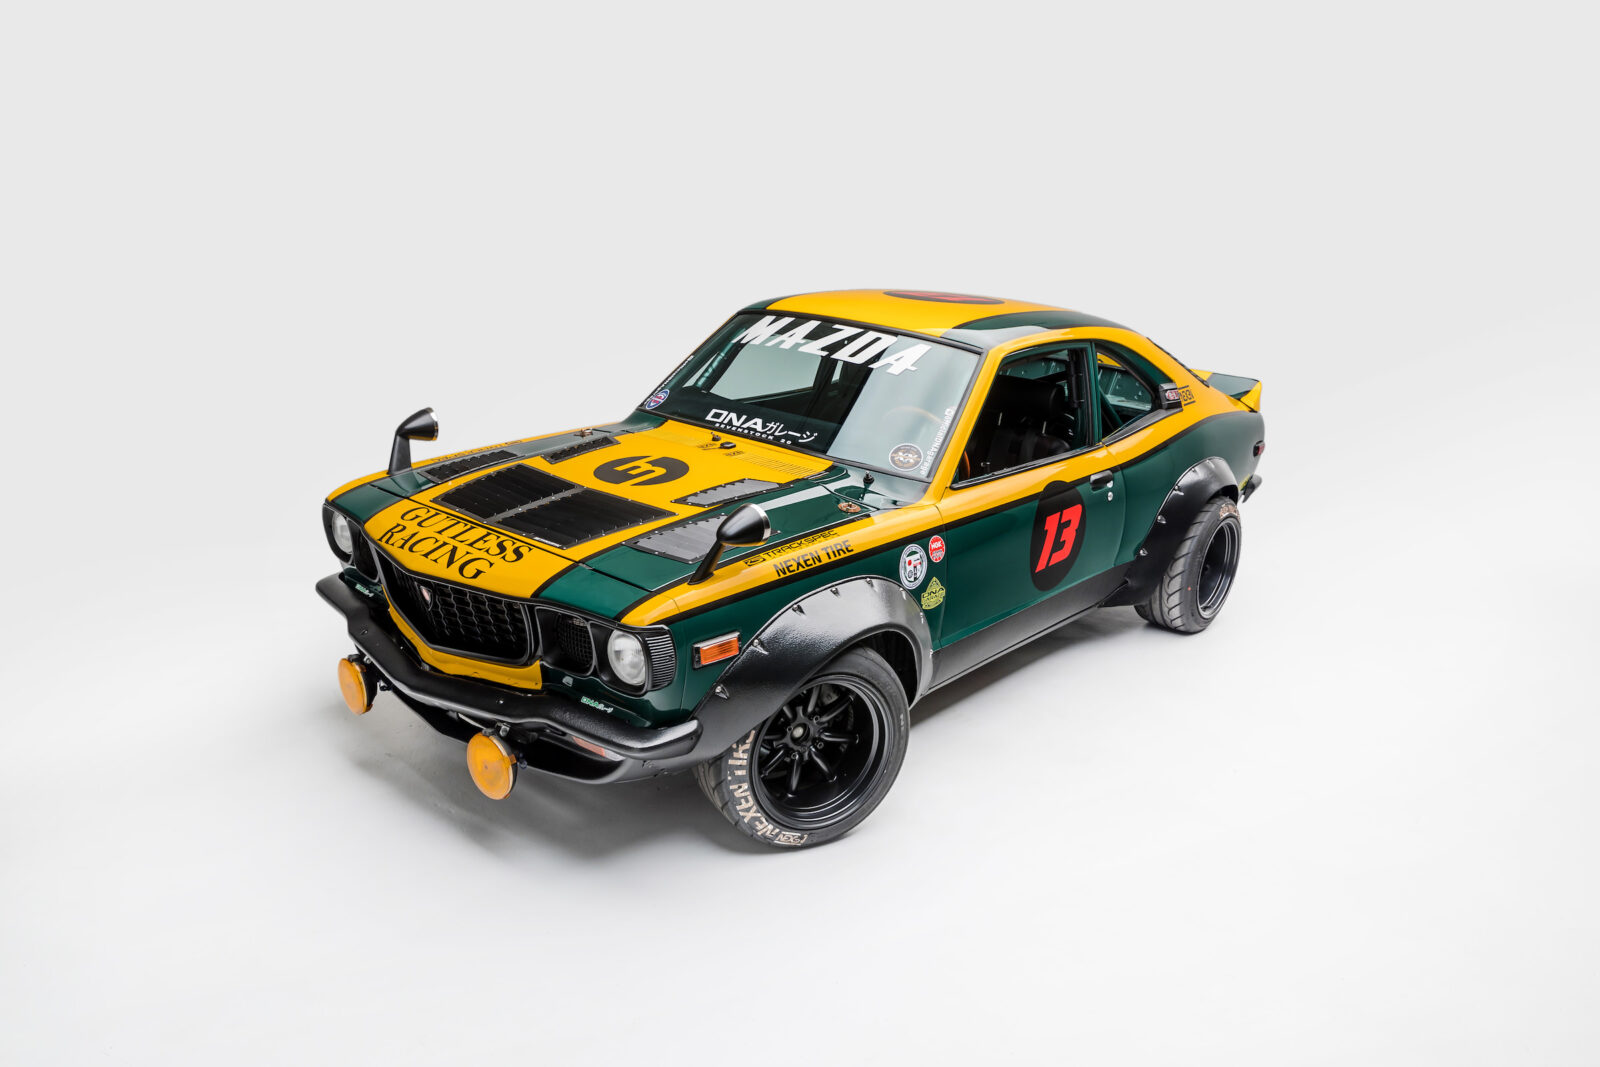 dna garage mazda rx 3 race car 400 bhp triple rotor. Black Bedroom Furniture Sets. Home Design Ideas